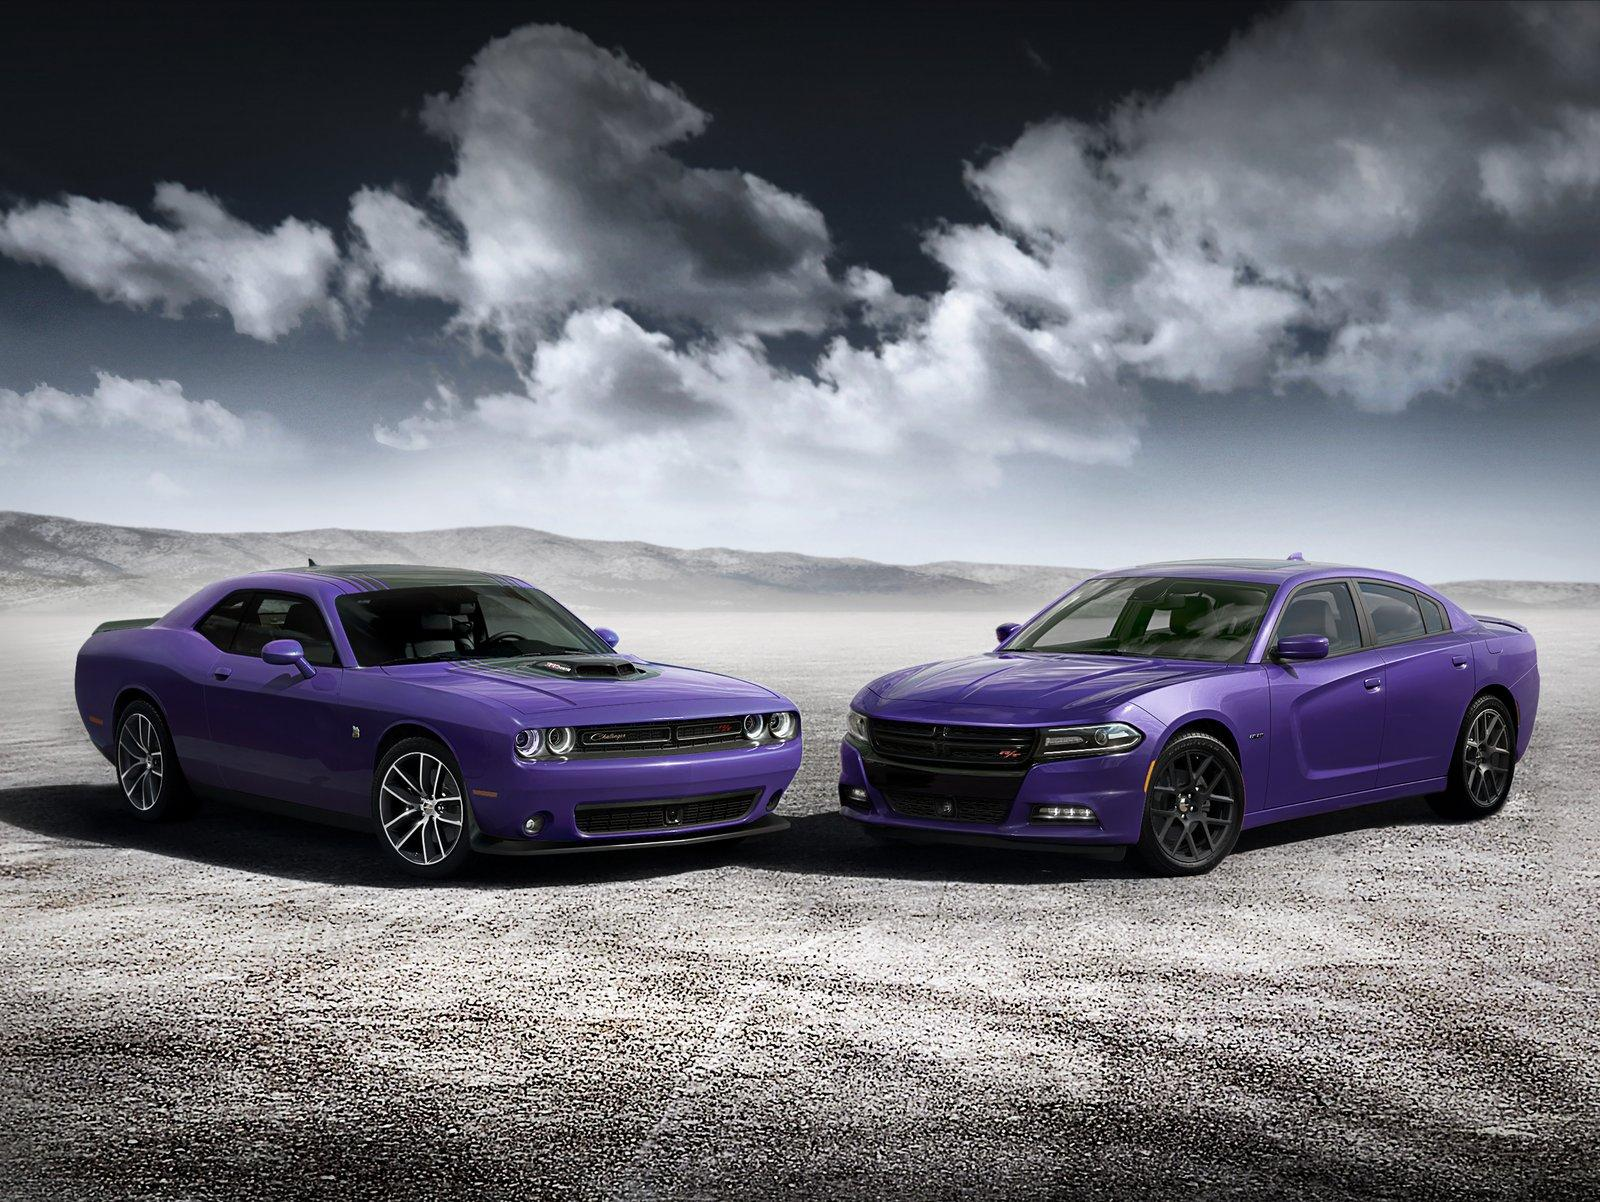 2016 Dodge Challenger Order Date and Details Revealed, Plum Crazy Pearl Finish Confirmed ...